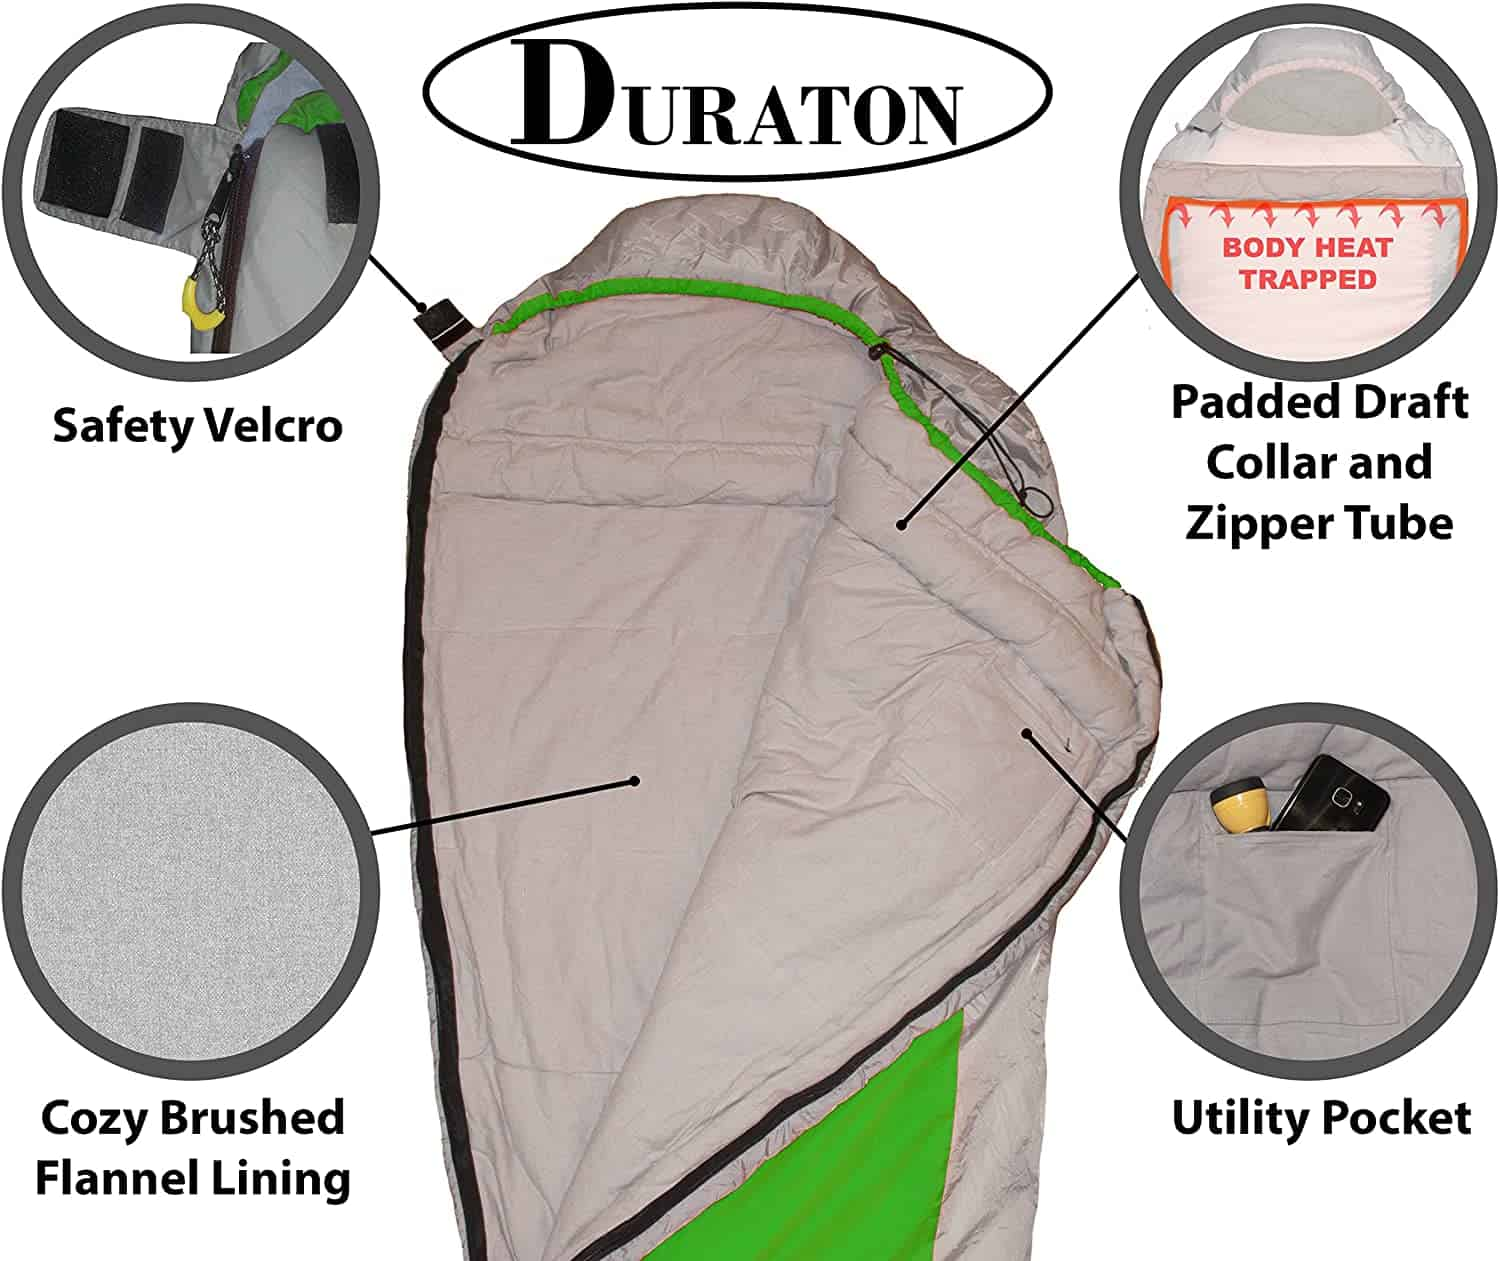 Duraton Mummy Sleeping Bag 20 Degree Weather, Lightweight with Compression Sack for Camping or Backpacking, Warm for Both Adults and Kids 2